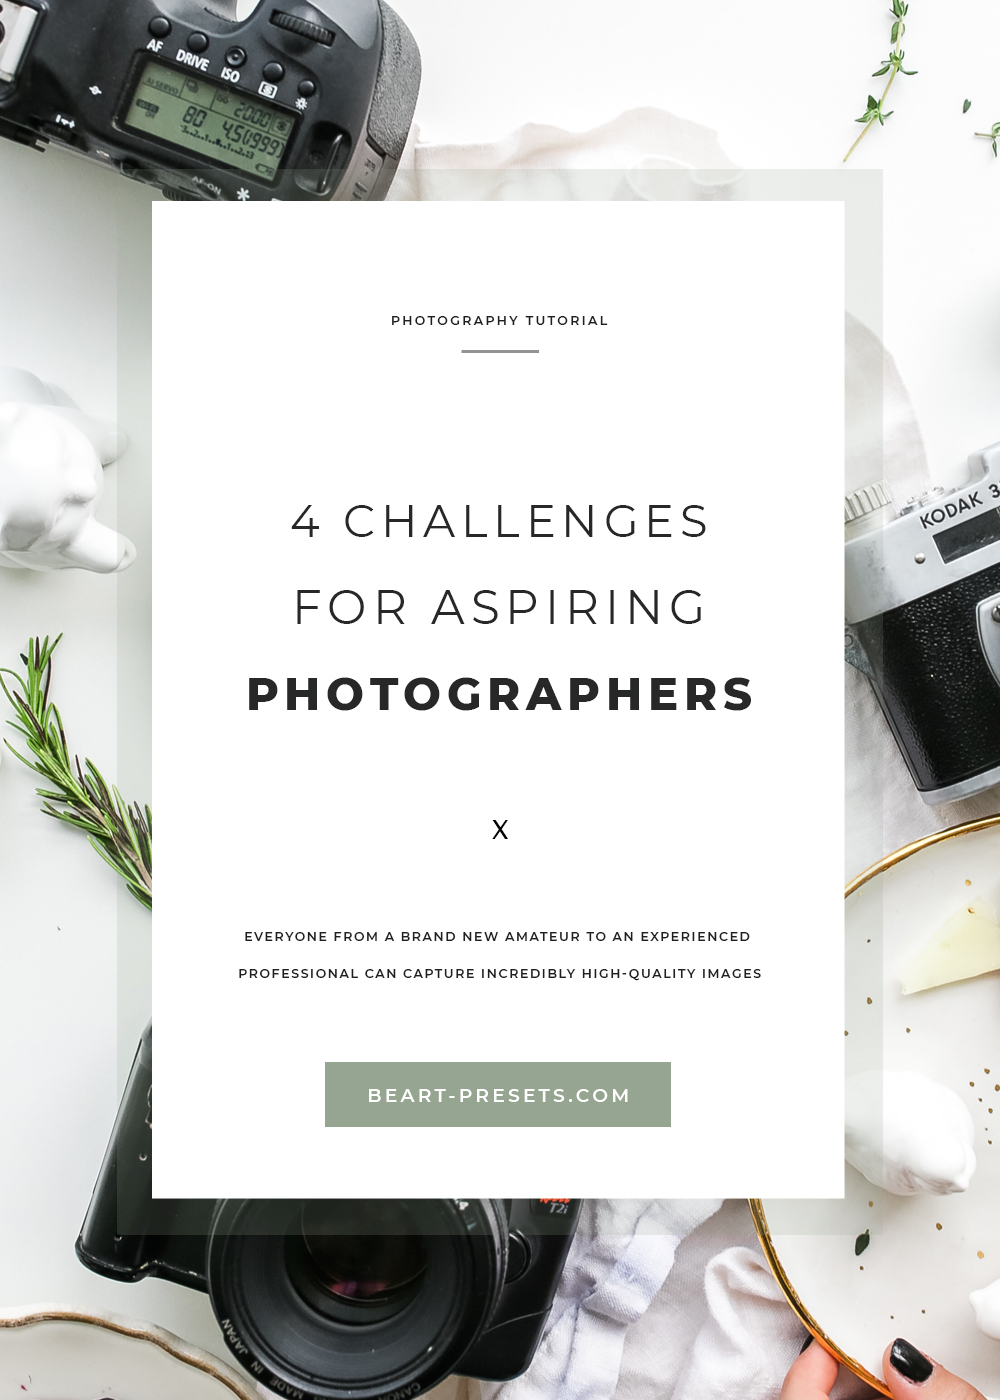 4 challenging for aspiring photographers